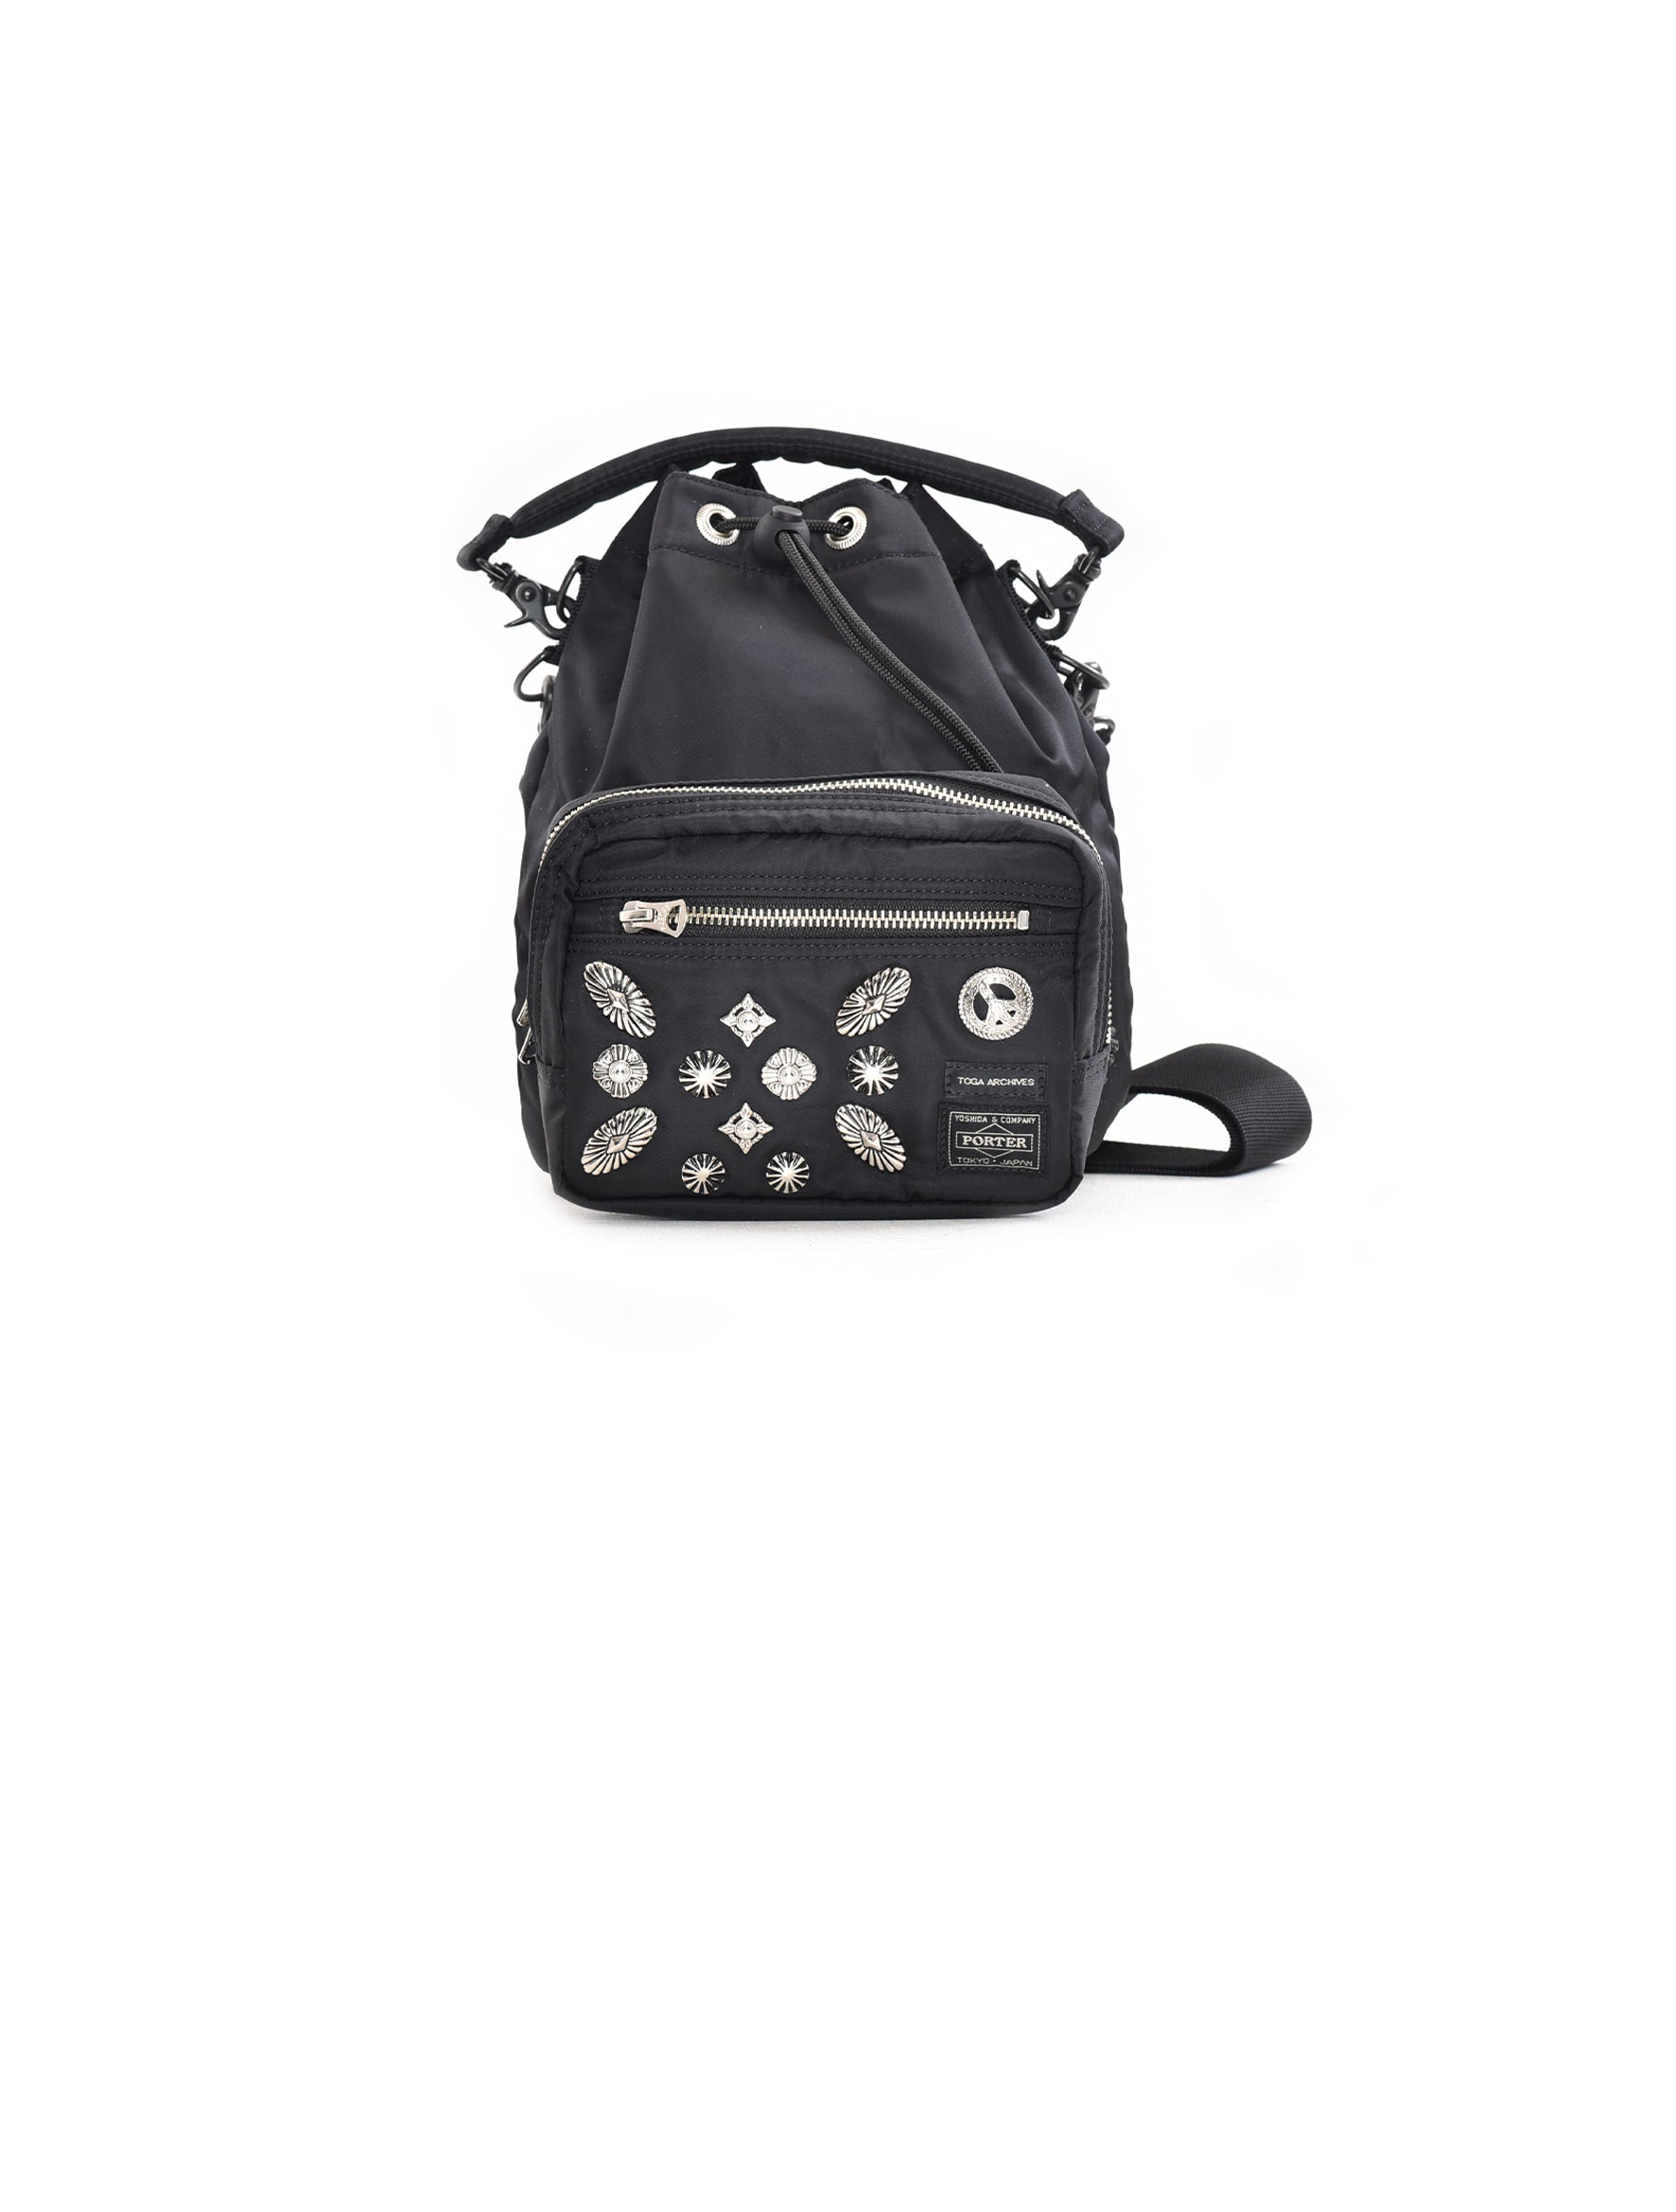 x Porter Black String Bag